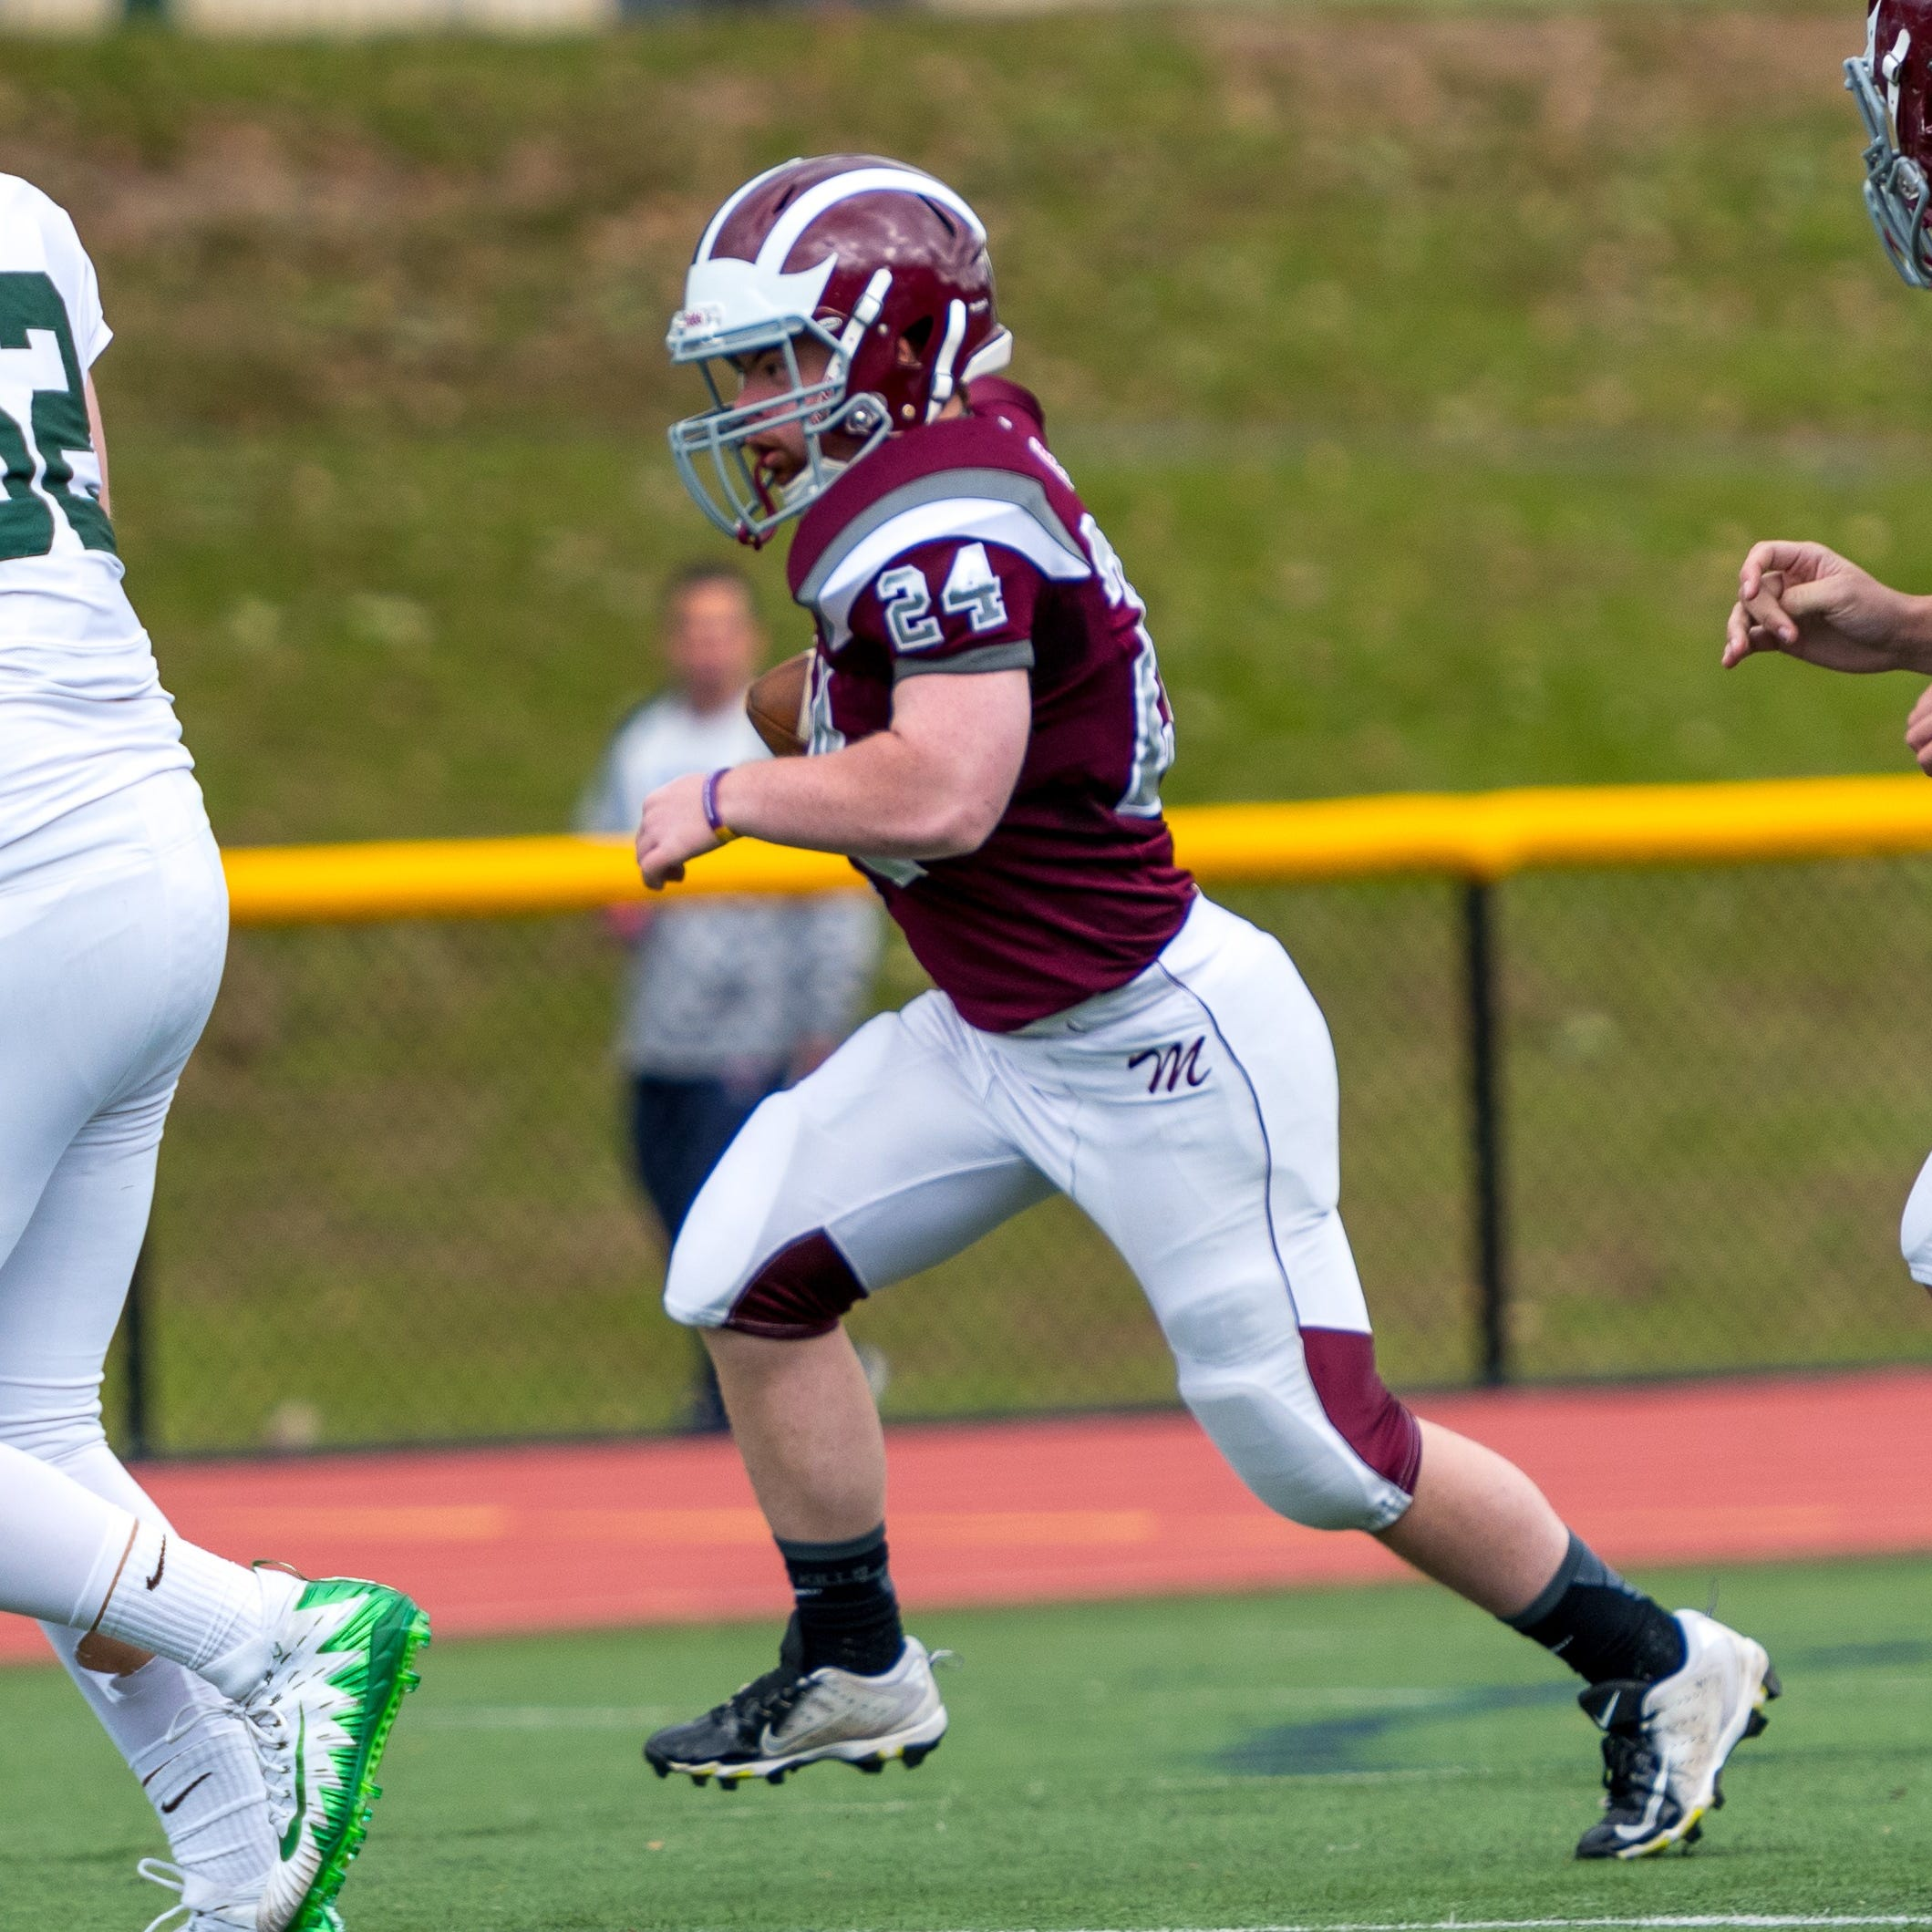 Morristown football player with Down syndrome scores touchdown